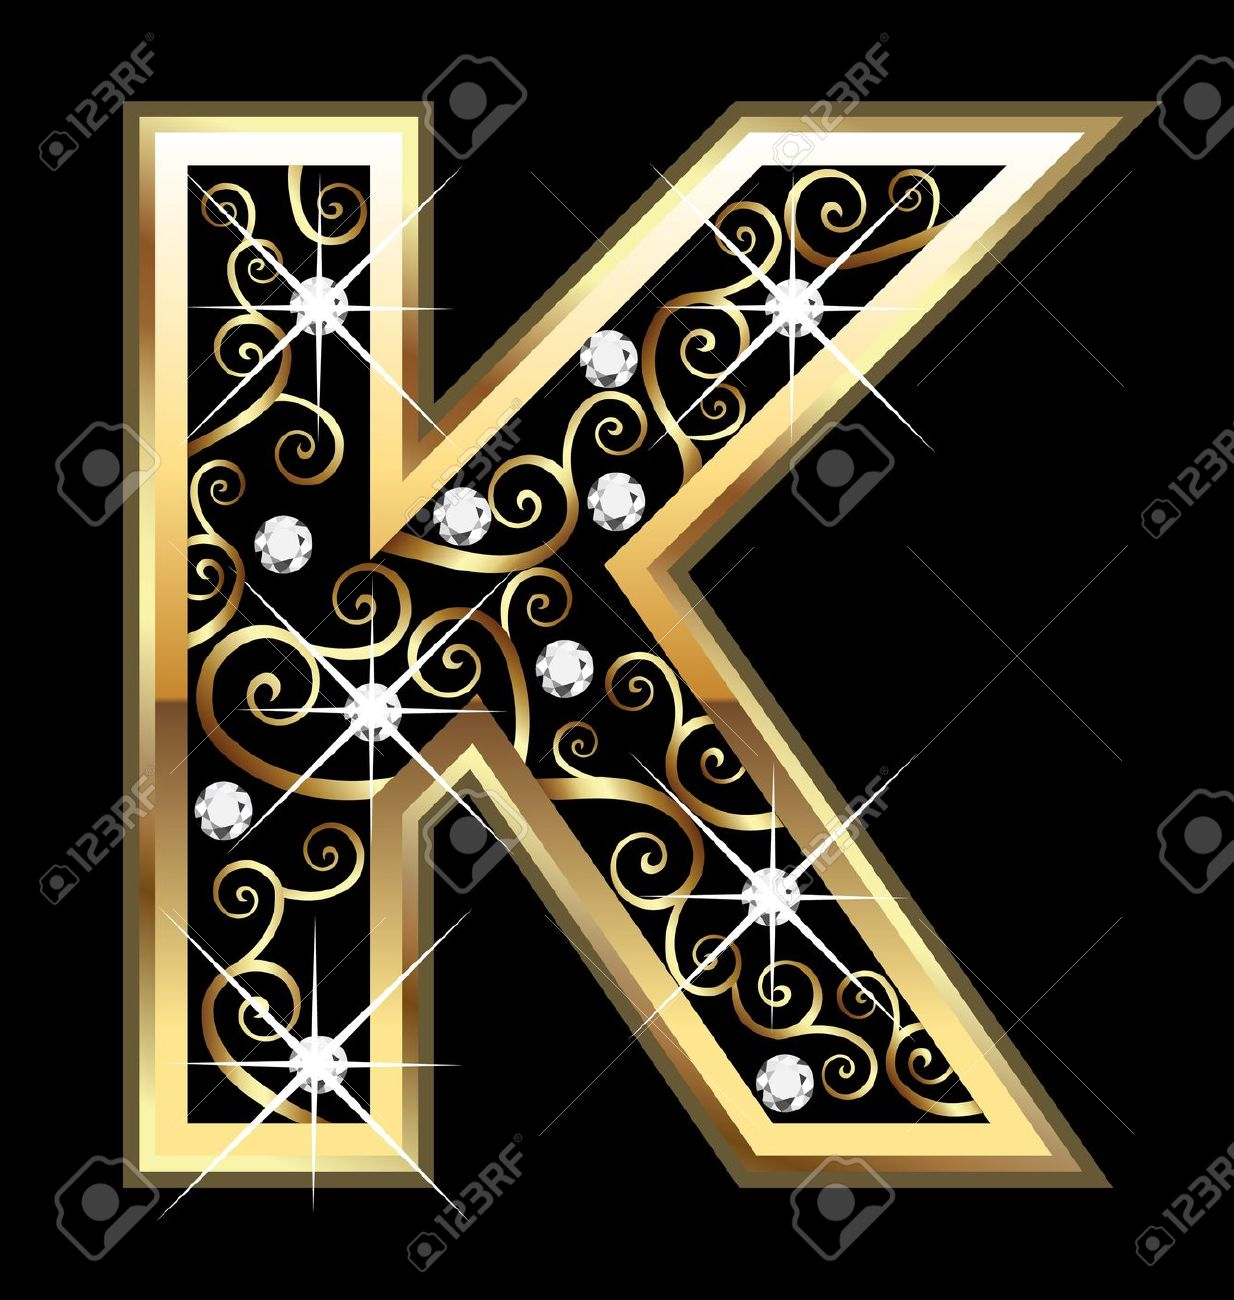 N Letter Wallpaper In Heart Types Of K And When It...